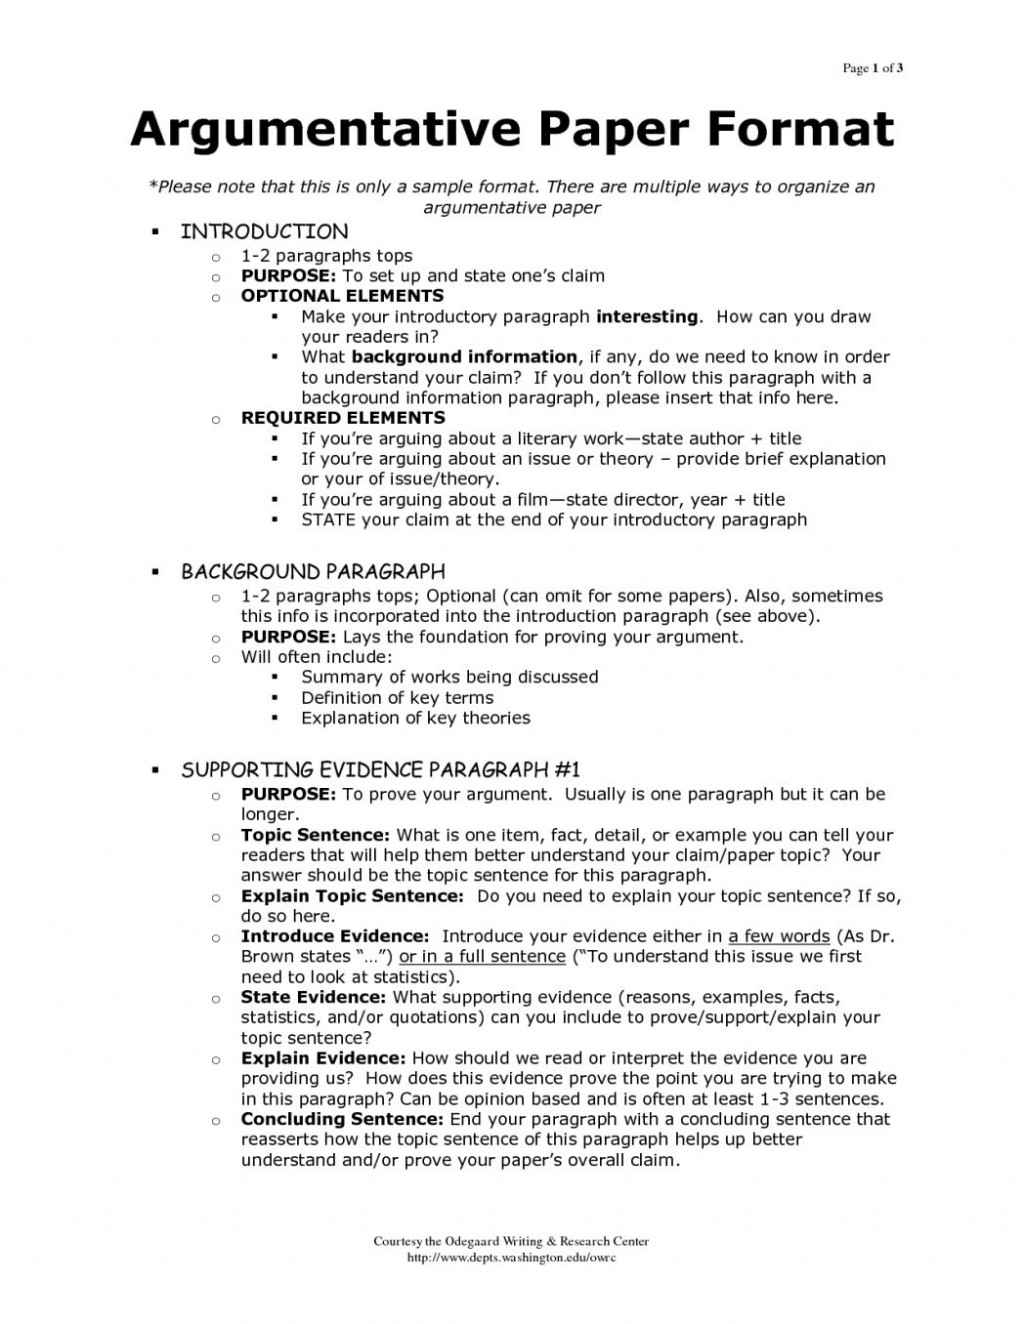 007 Research Paper Arguments Argumentative Essay Examples For High School Oracleboss Pertaining To Imposing Introduction Large